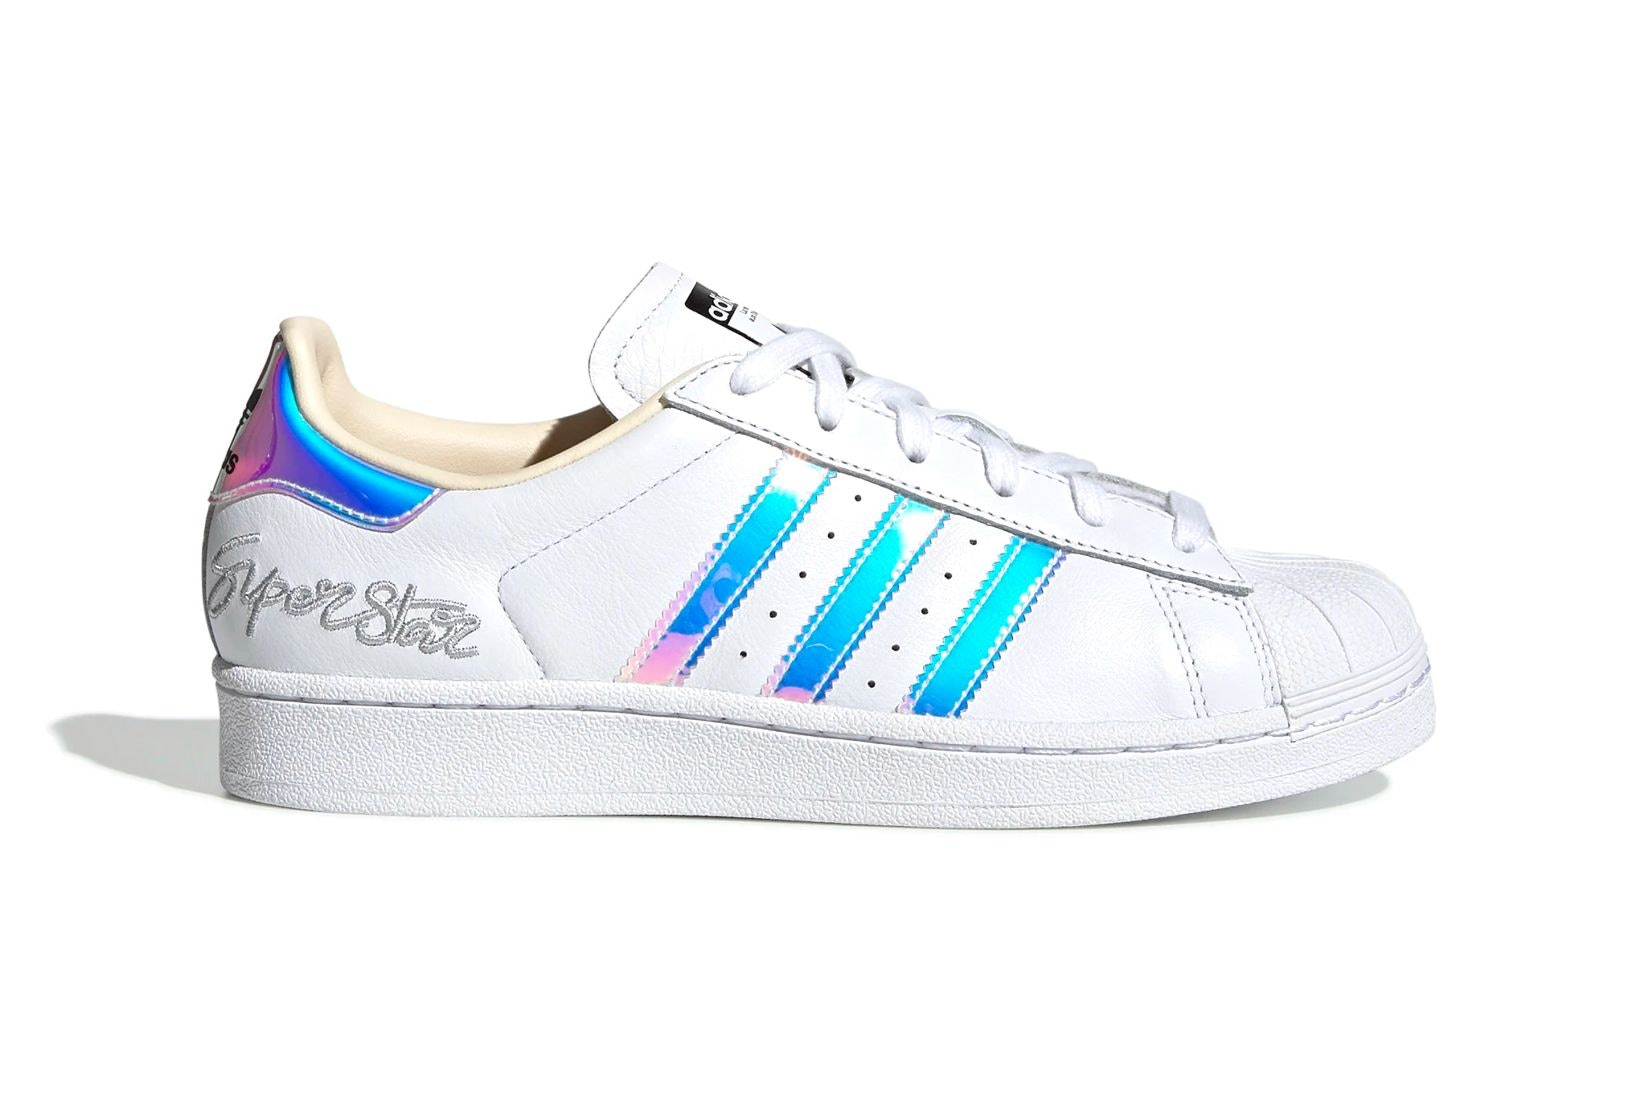 4d0e27bb3 Google News - Adidas Originals - Latest